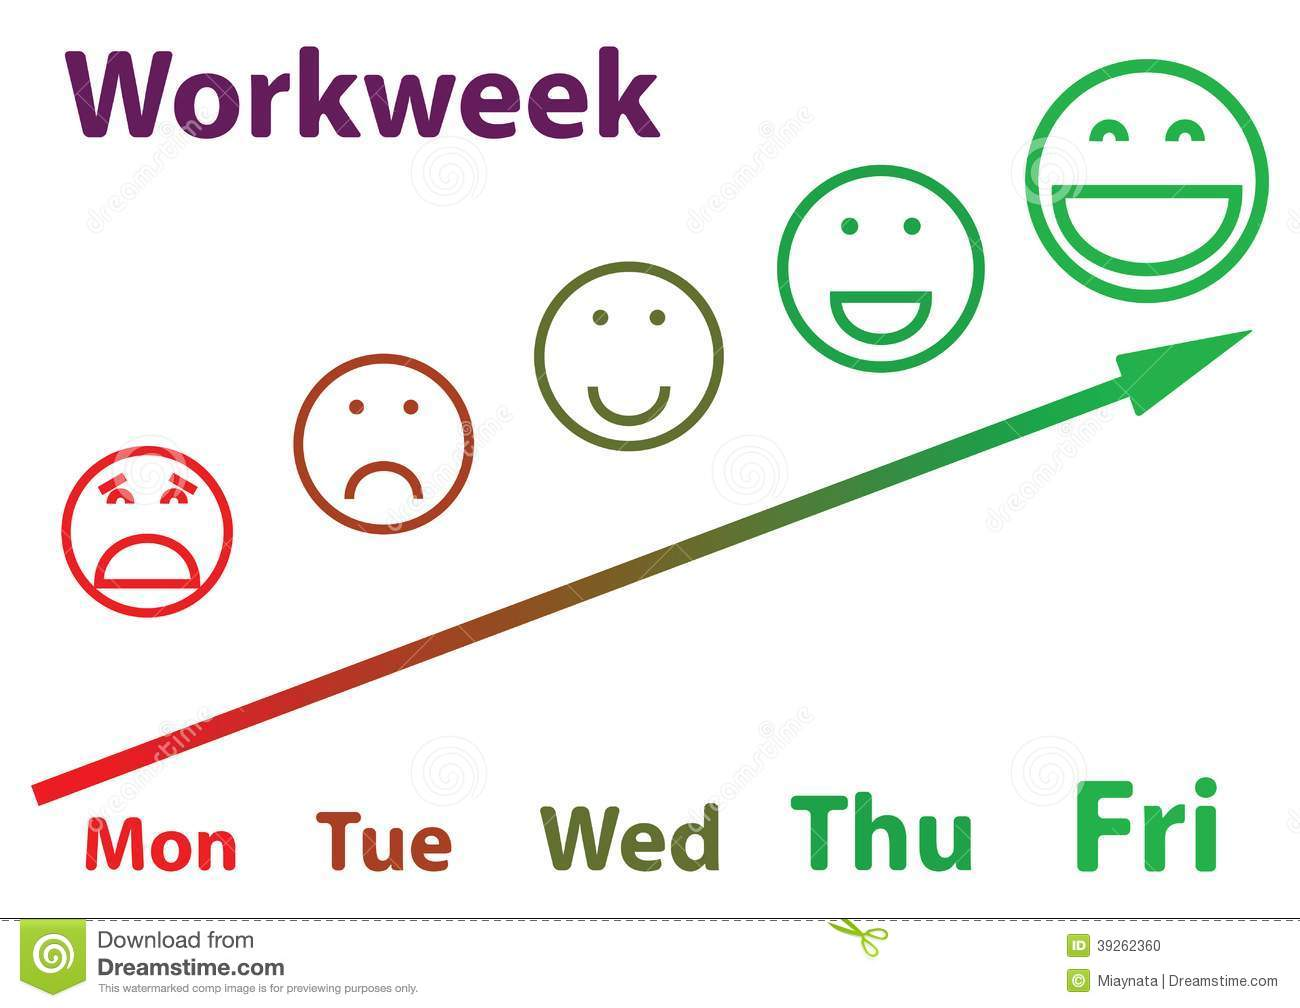 Schedule of your mood with smiles from monday to friday.